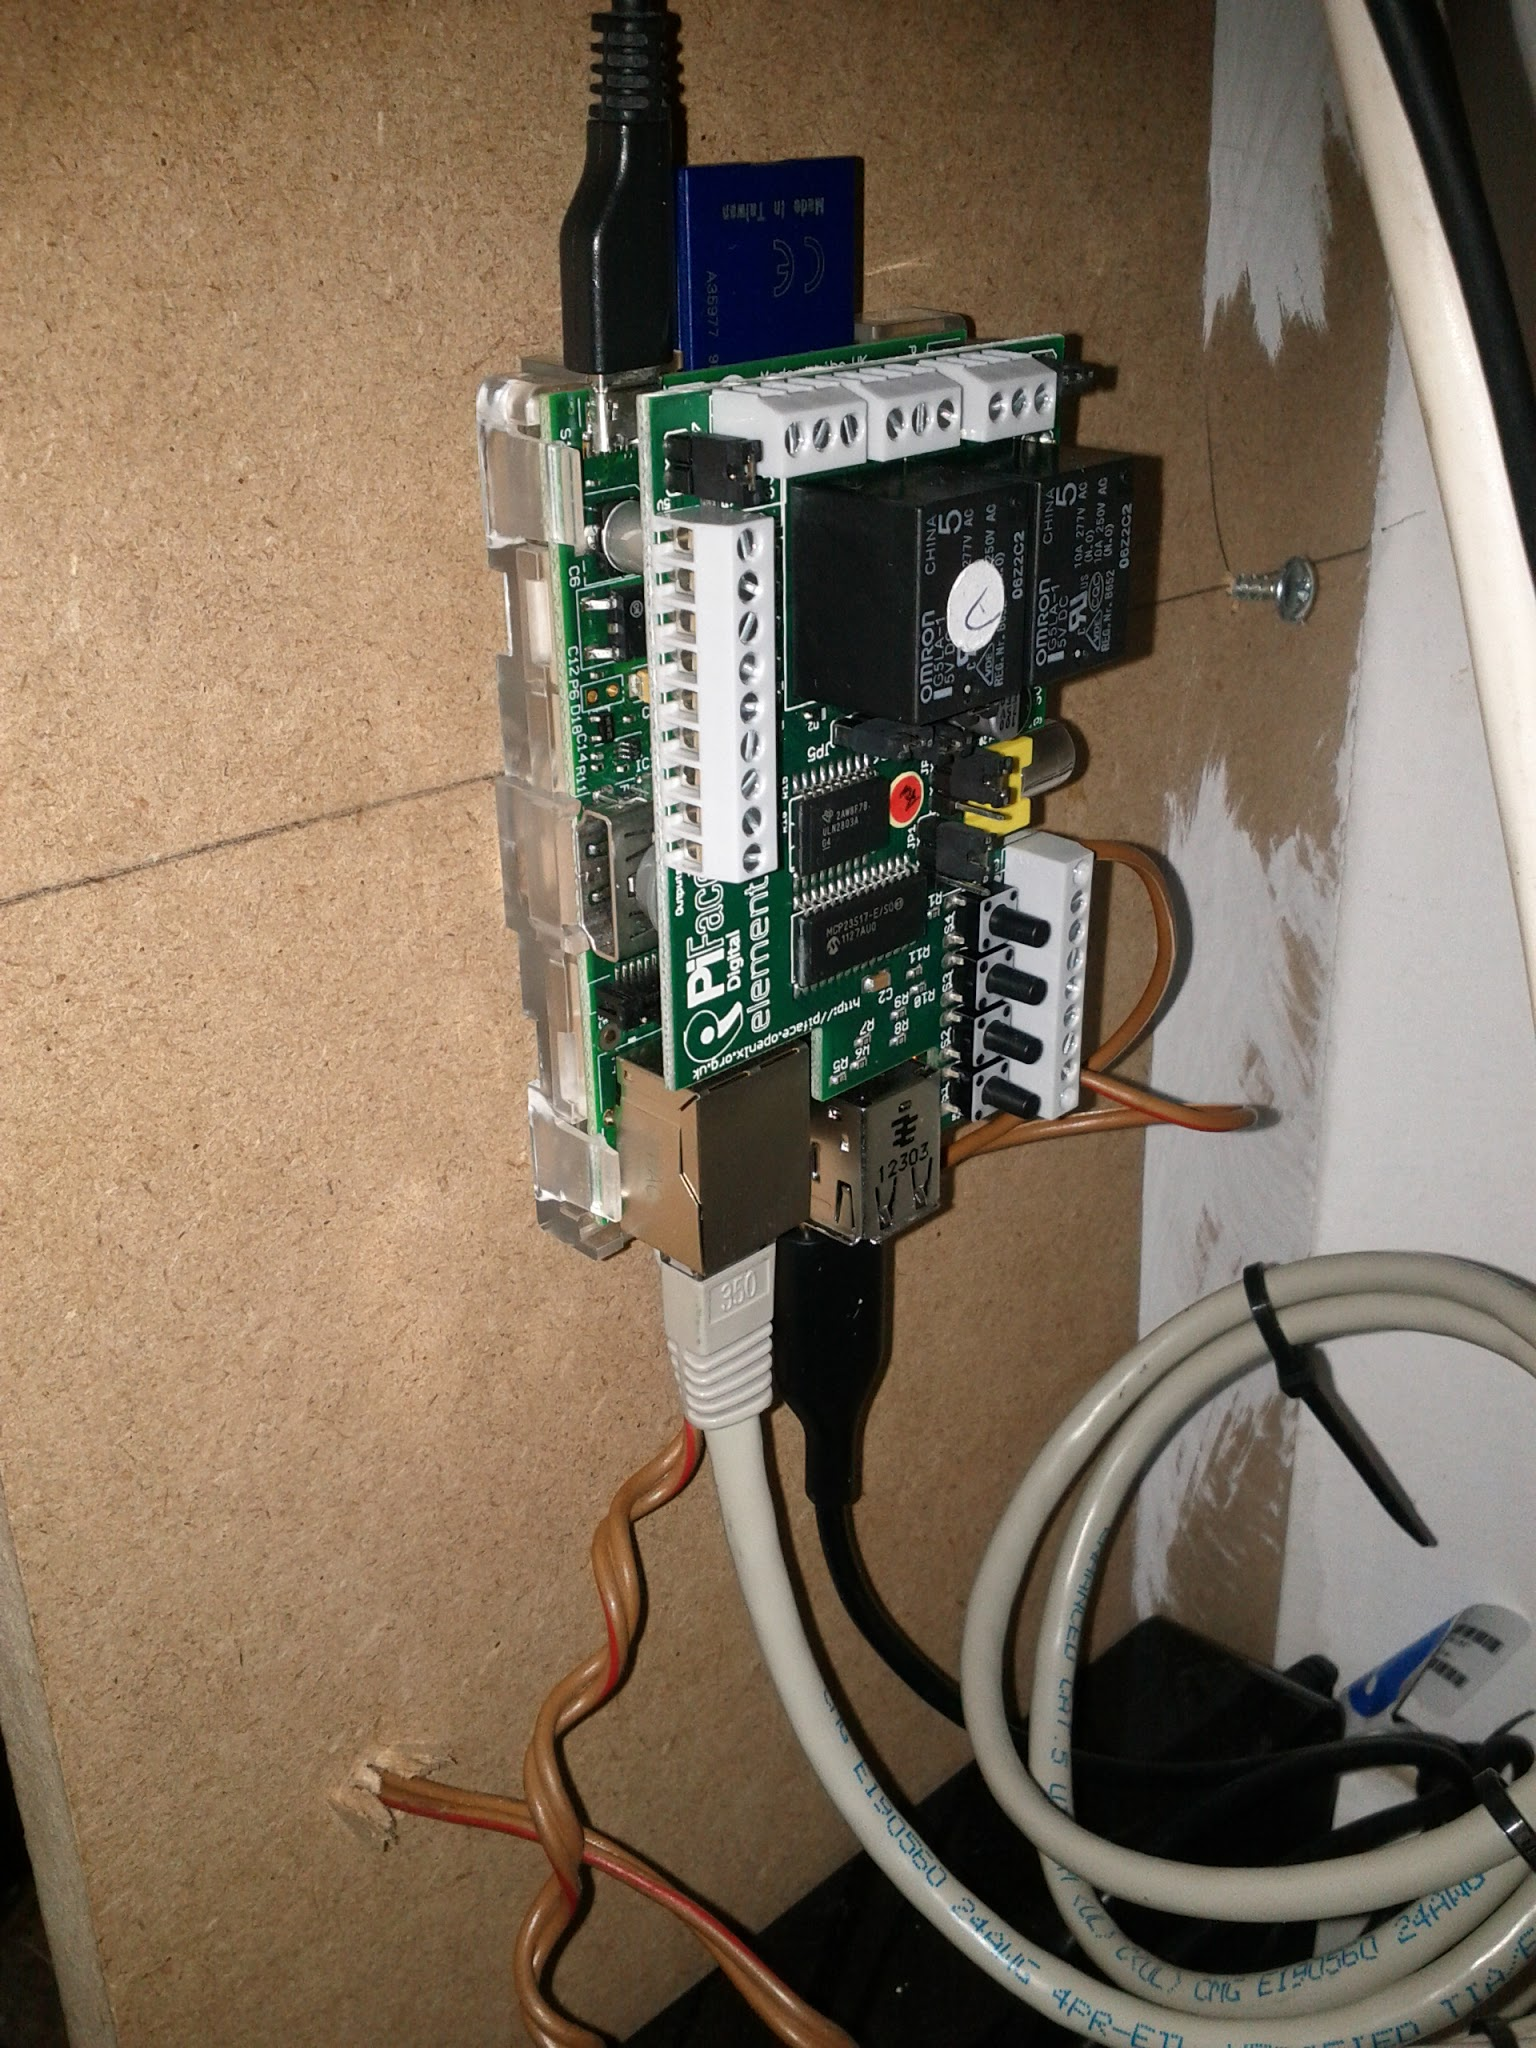 """Photo: The Raspberry Pi with a Piface reading the pulses from the gas meter or rather the reed switch. This is done with very simple Python code   #!/usr/bin/python from time import sleep from time import mktime from time import gmtime import datetime import piface.pfio as pfio pfio.init() lastread = 0 total = 0 while(True):   myread = pfio.digital_read(0)   if myread != lastread:      date = mktime(gmtime())      total = total + myread      print datetime.datetime.now().strftime(""""%Y-%m-%d %H:%M:%S""""),"""","""",date, """","""",myread,"""","""",total      lastread = myread   sleep(0.01)   The script gets fired off with nohup stdbuf -o0 ./read.py > test.out& to make sure it happily runs in the bachground. When you turn on the hot water you can then see the logfile showing each turn of the smallest wheel. The counts are pretty accurate, at least if you believe my daily readings."""